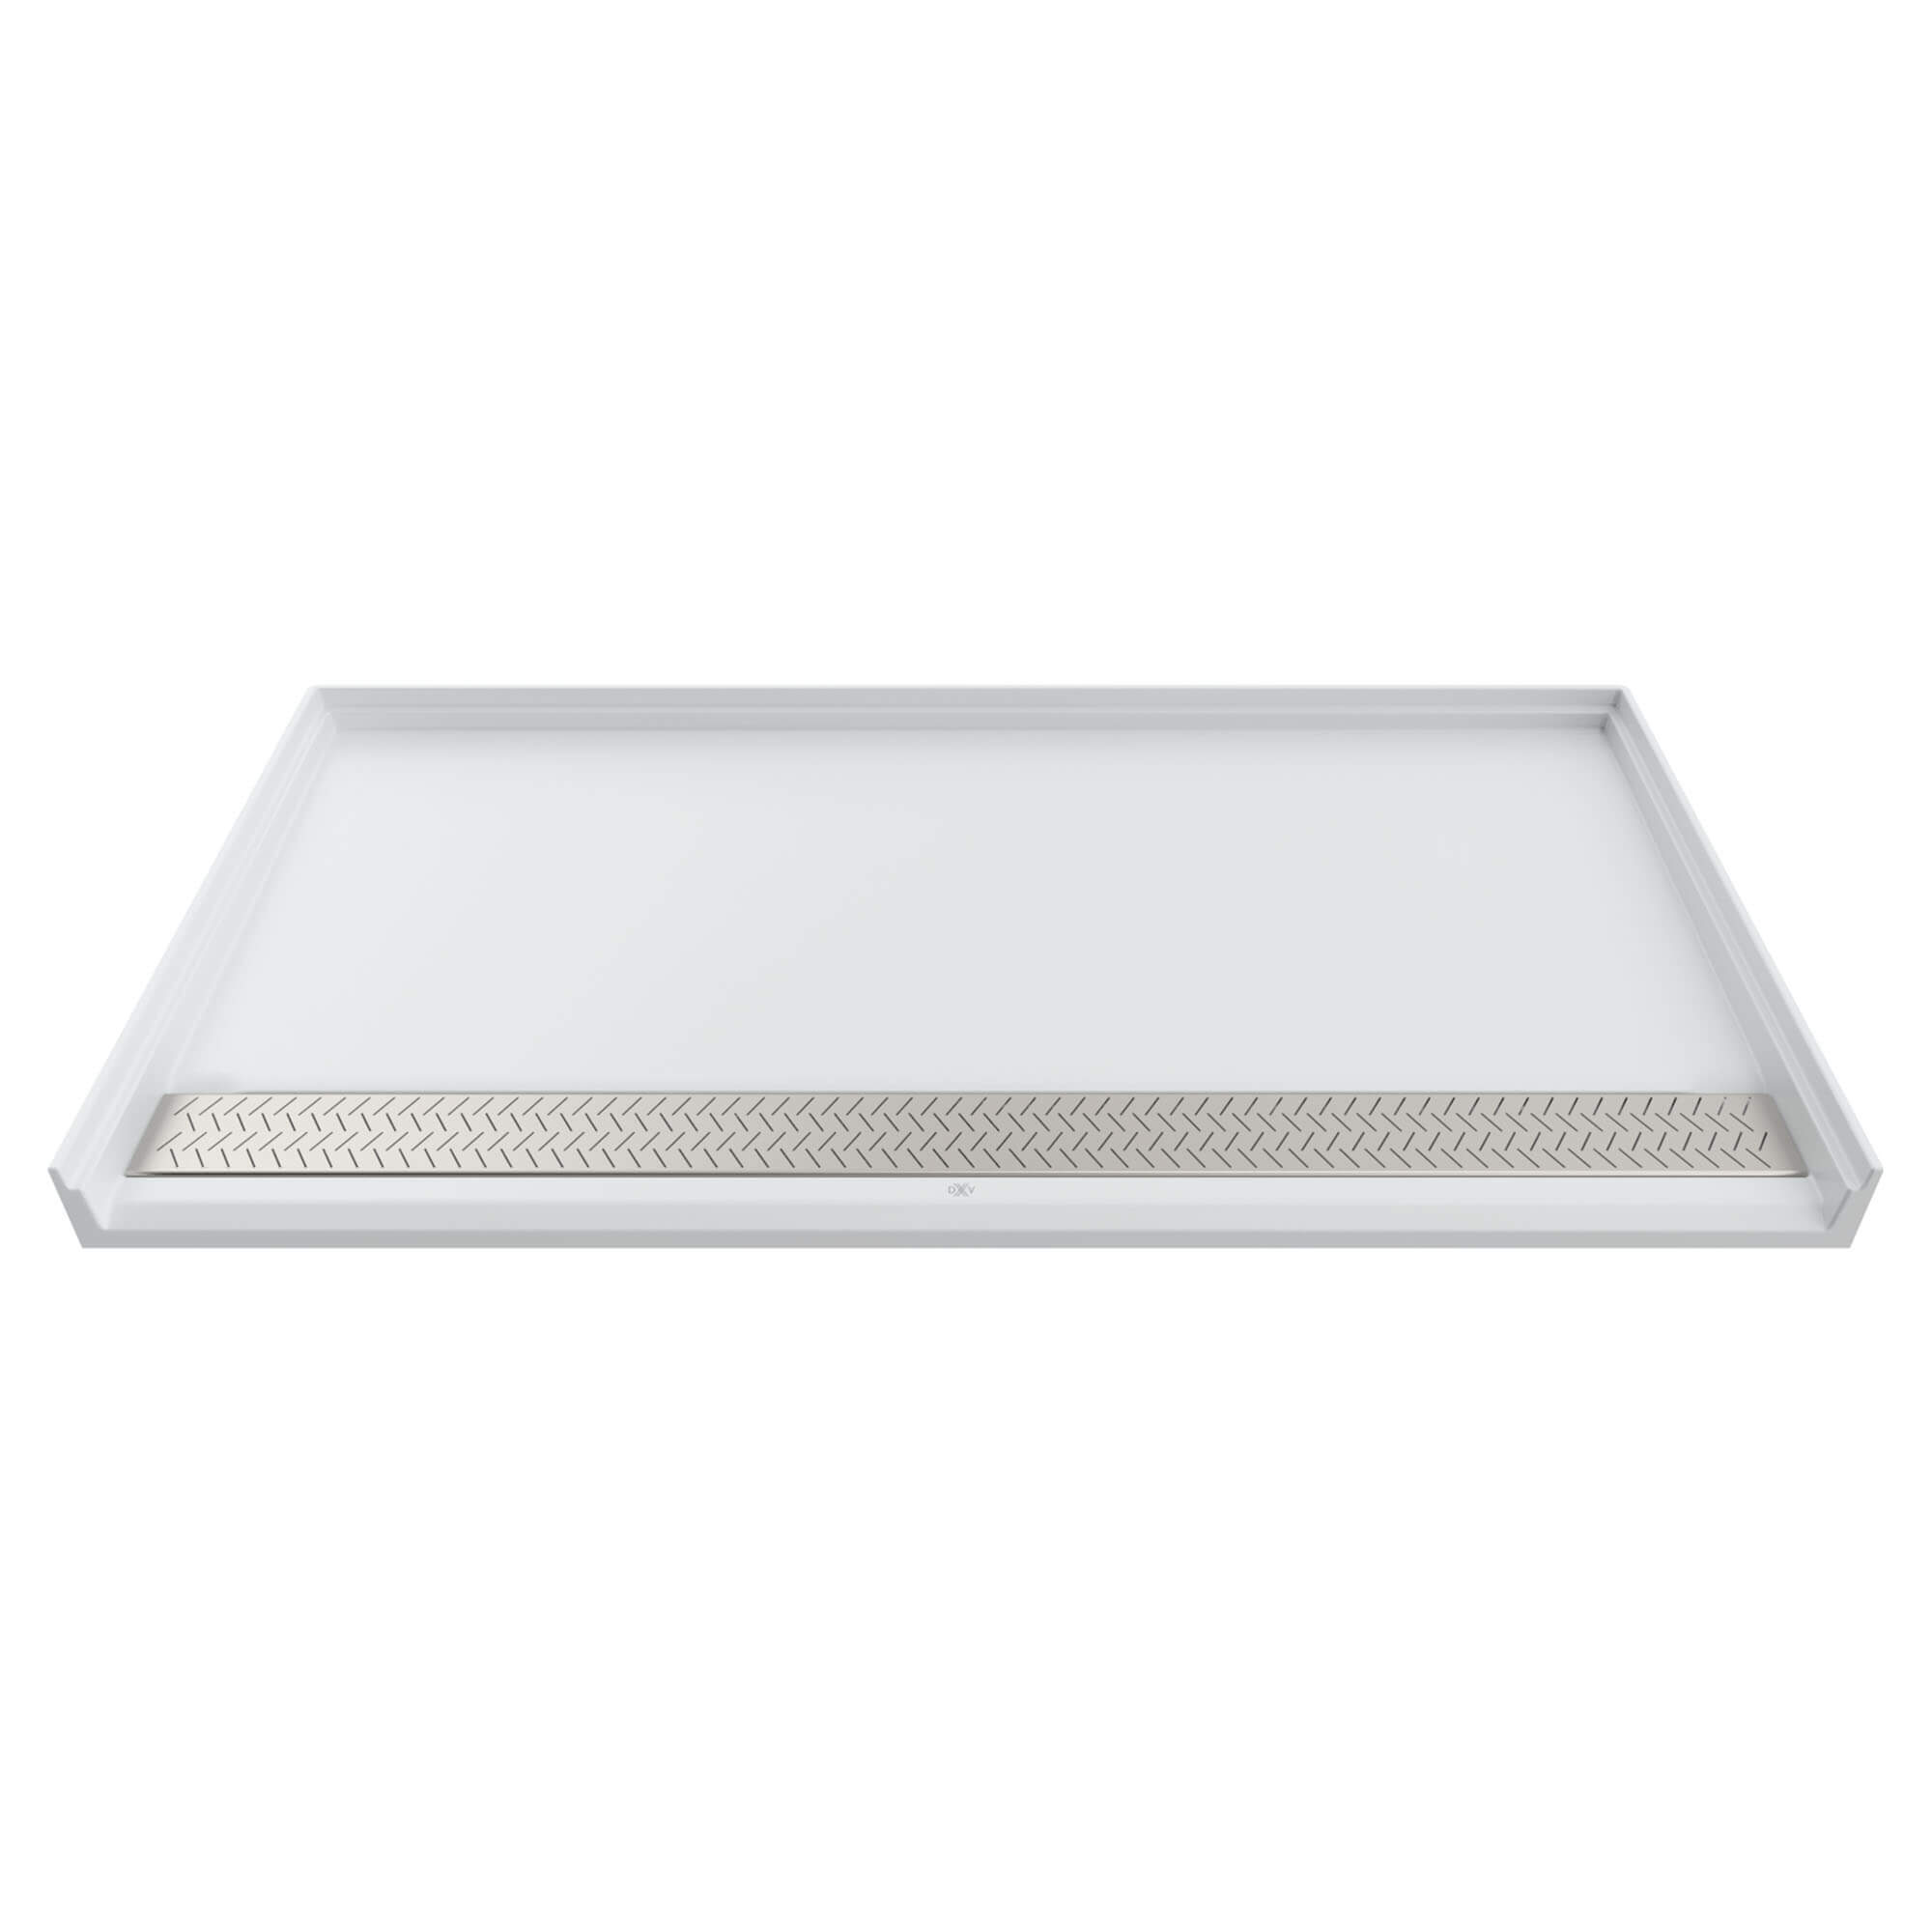 DXV Modulus 64x34-inch Solid Surface Shower Base